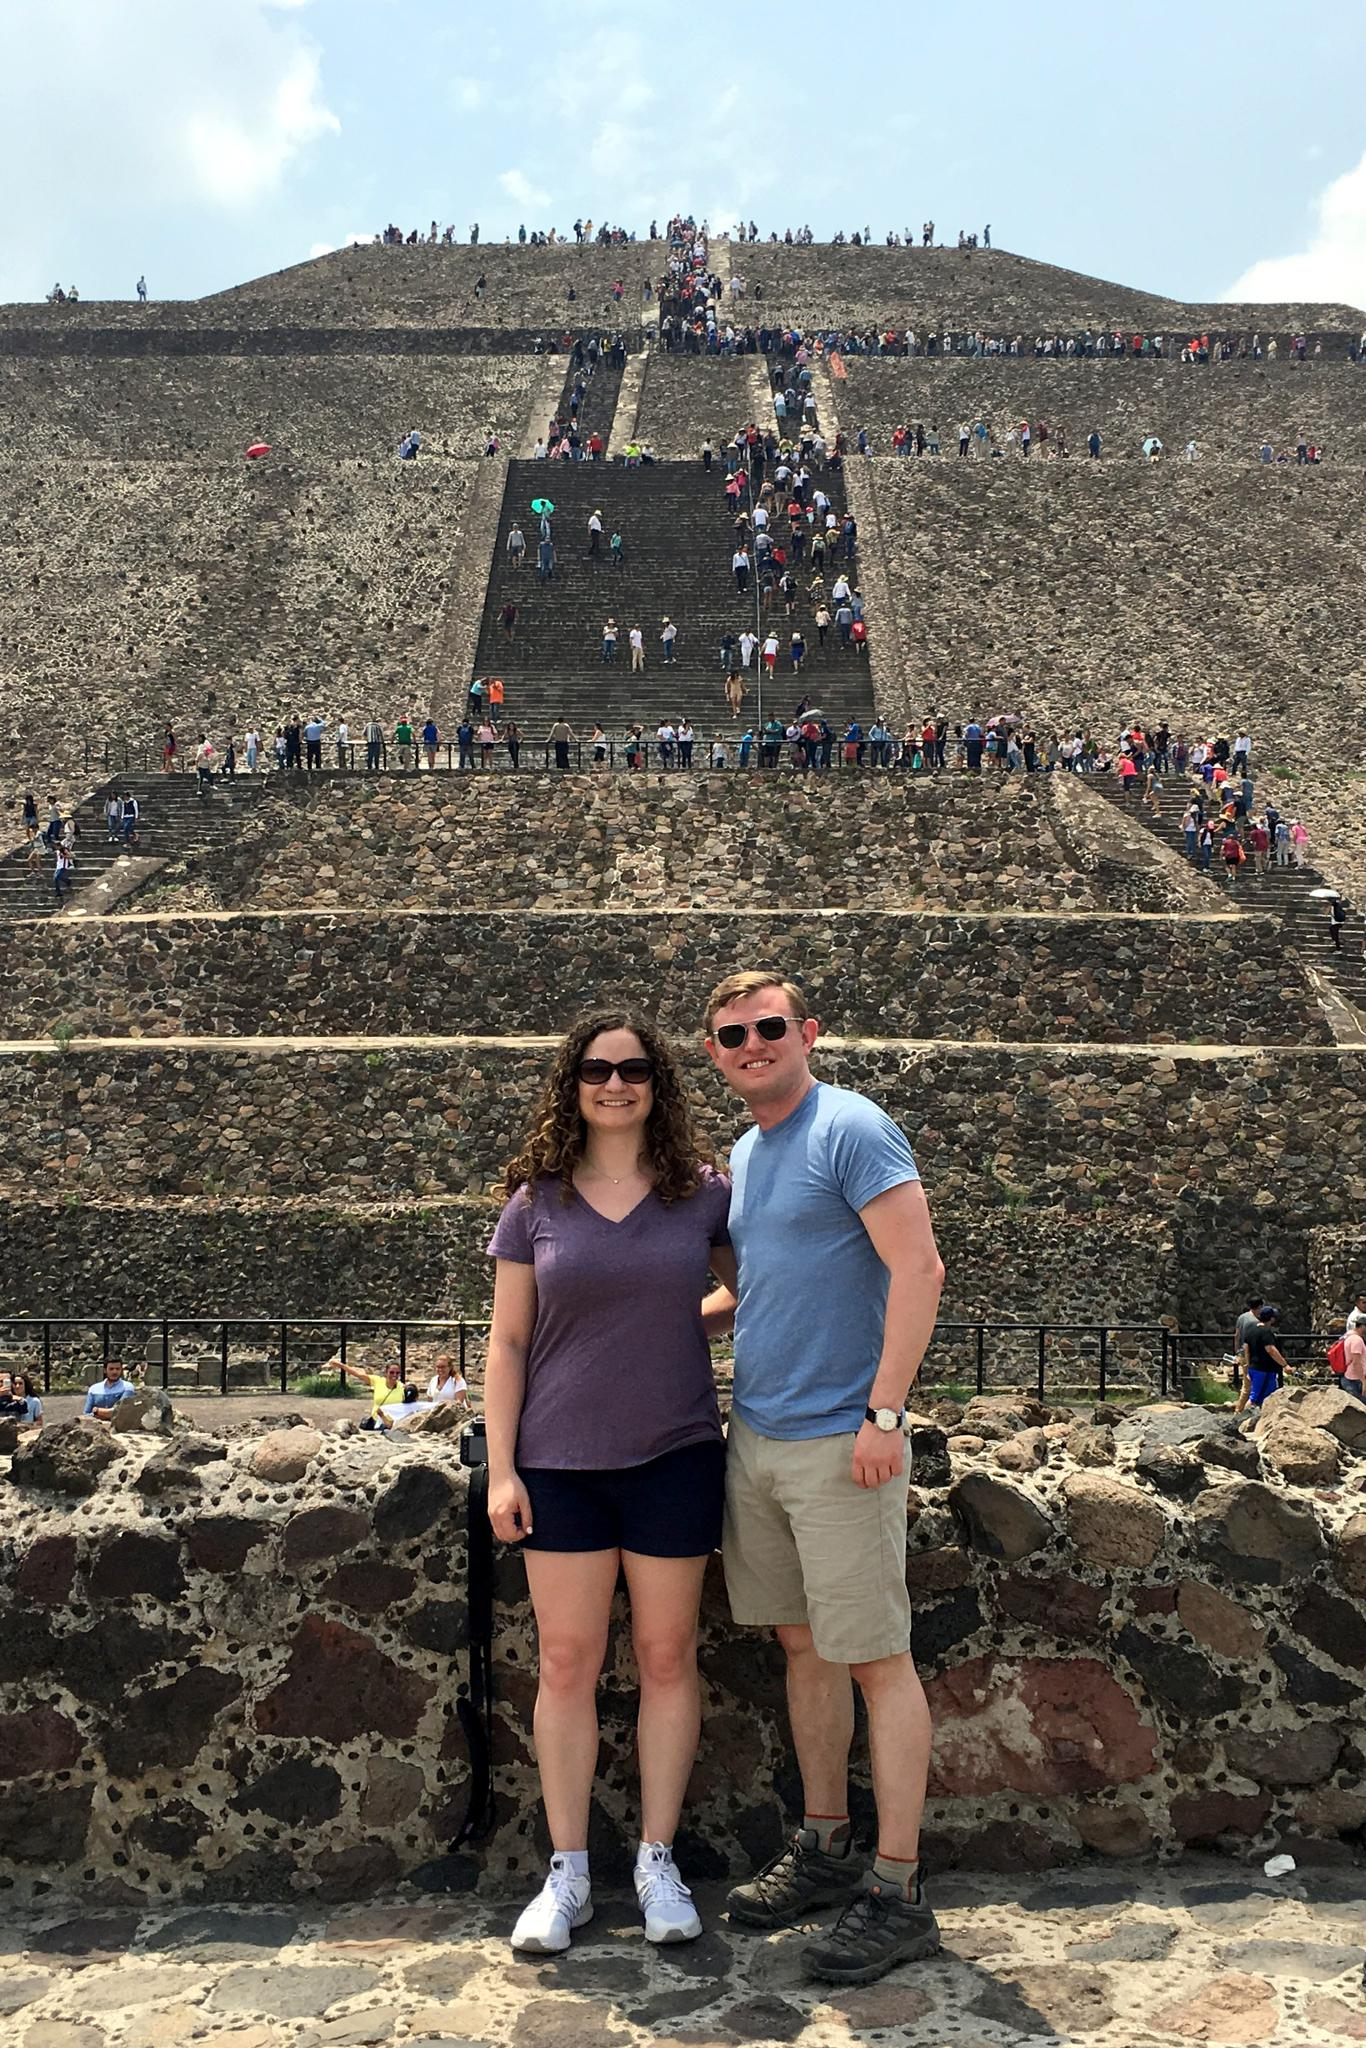 At Teotihuacan outside Mexico City